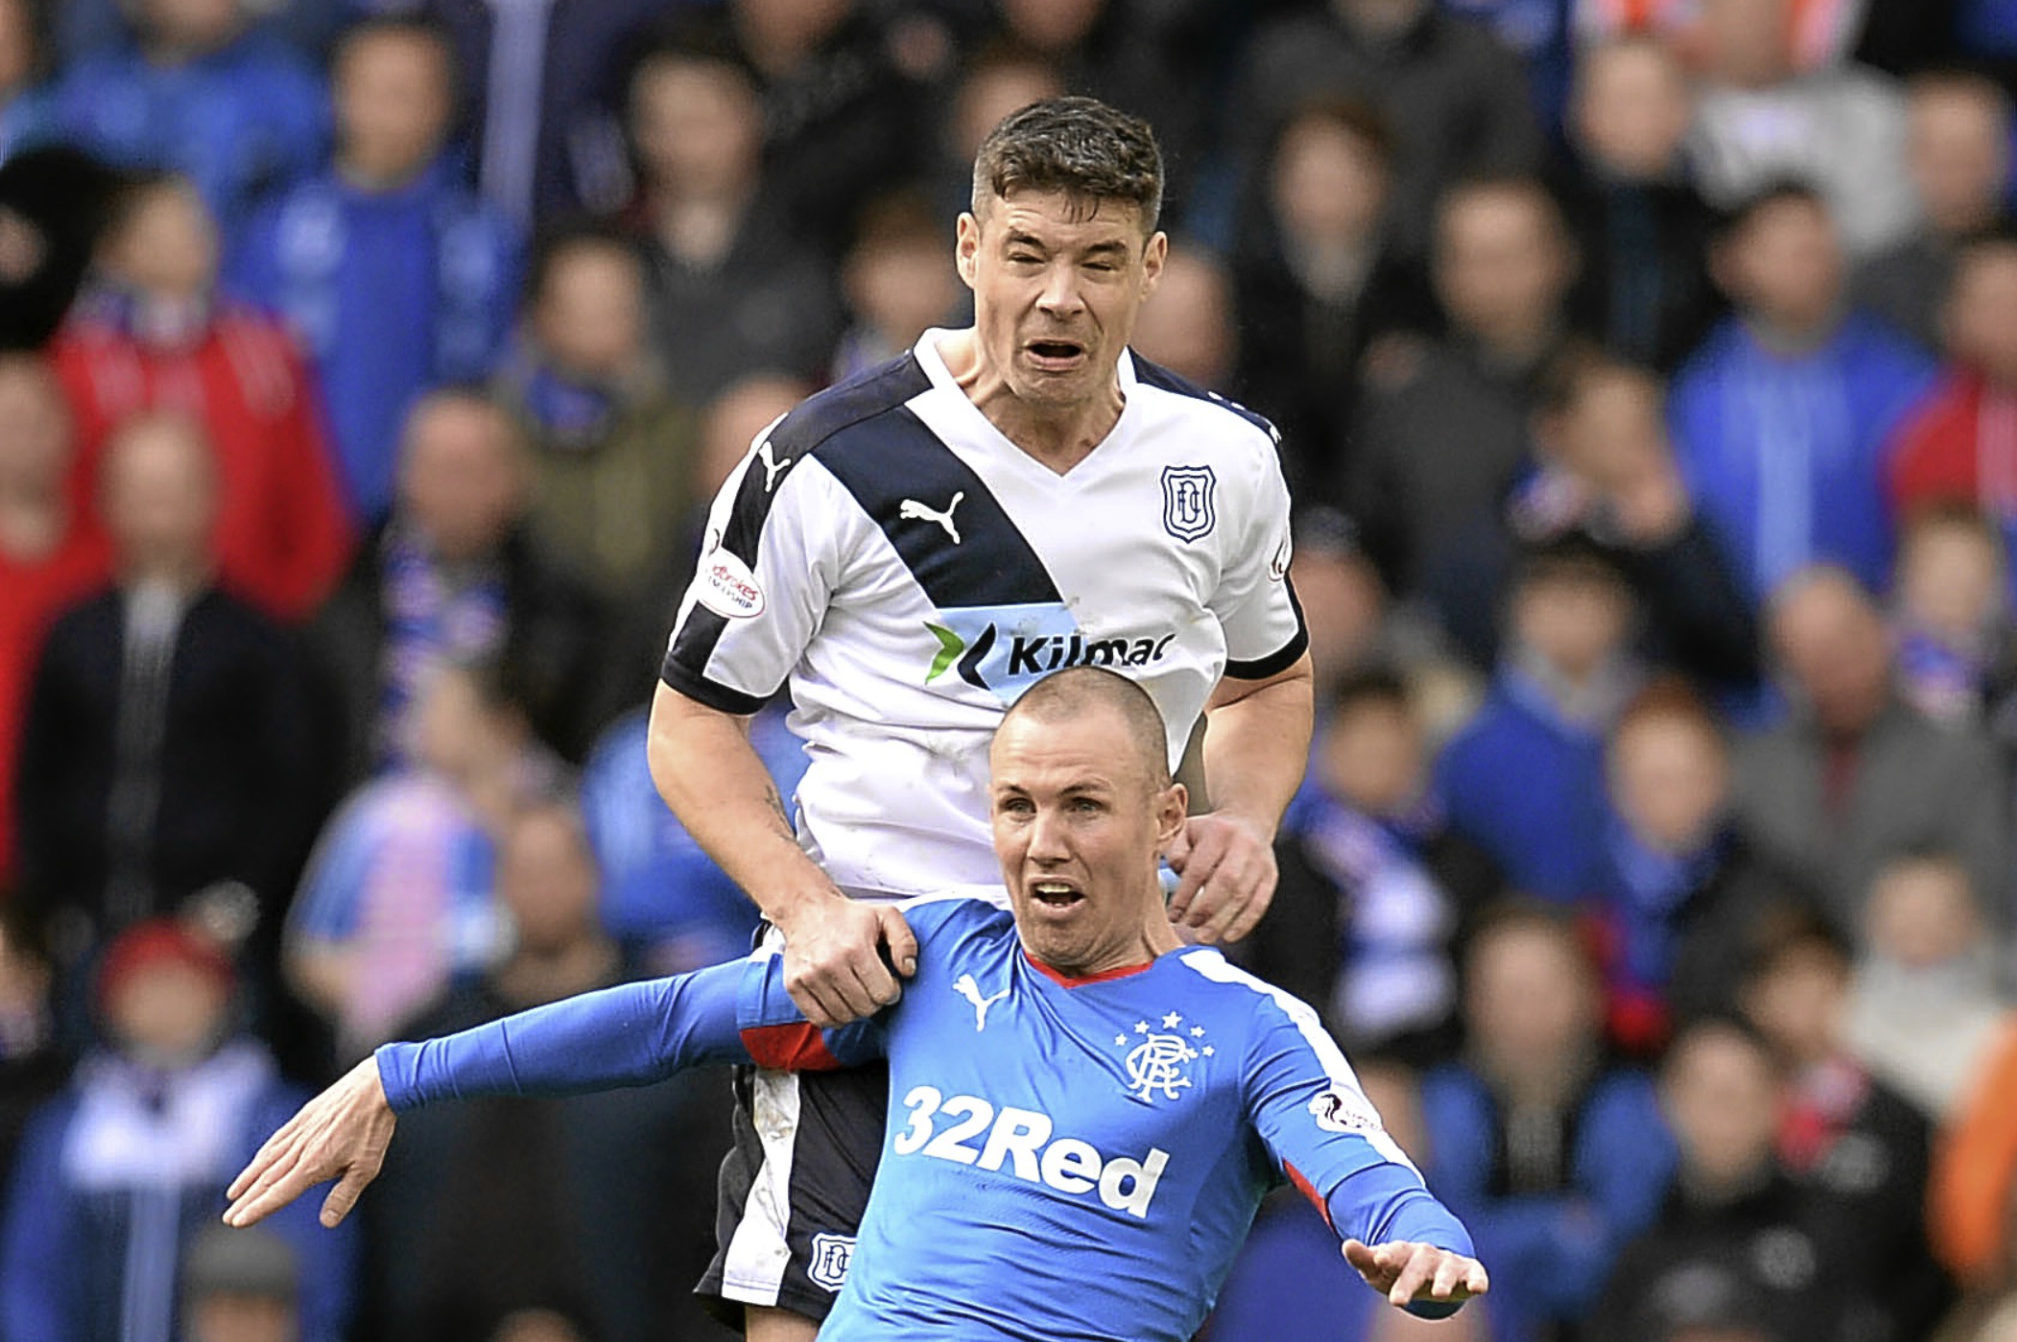 Kenny Miller competes with Dundee's Darren O'Dea in the Scottish Cup in 2016